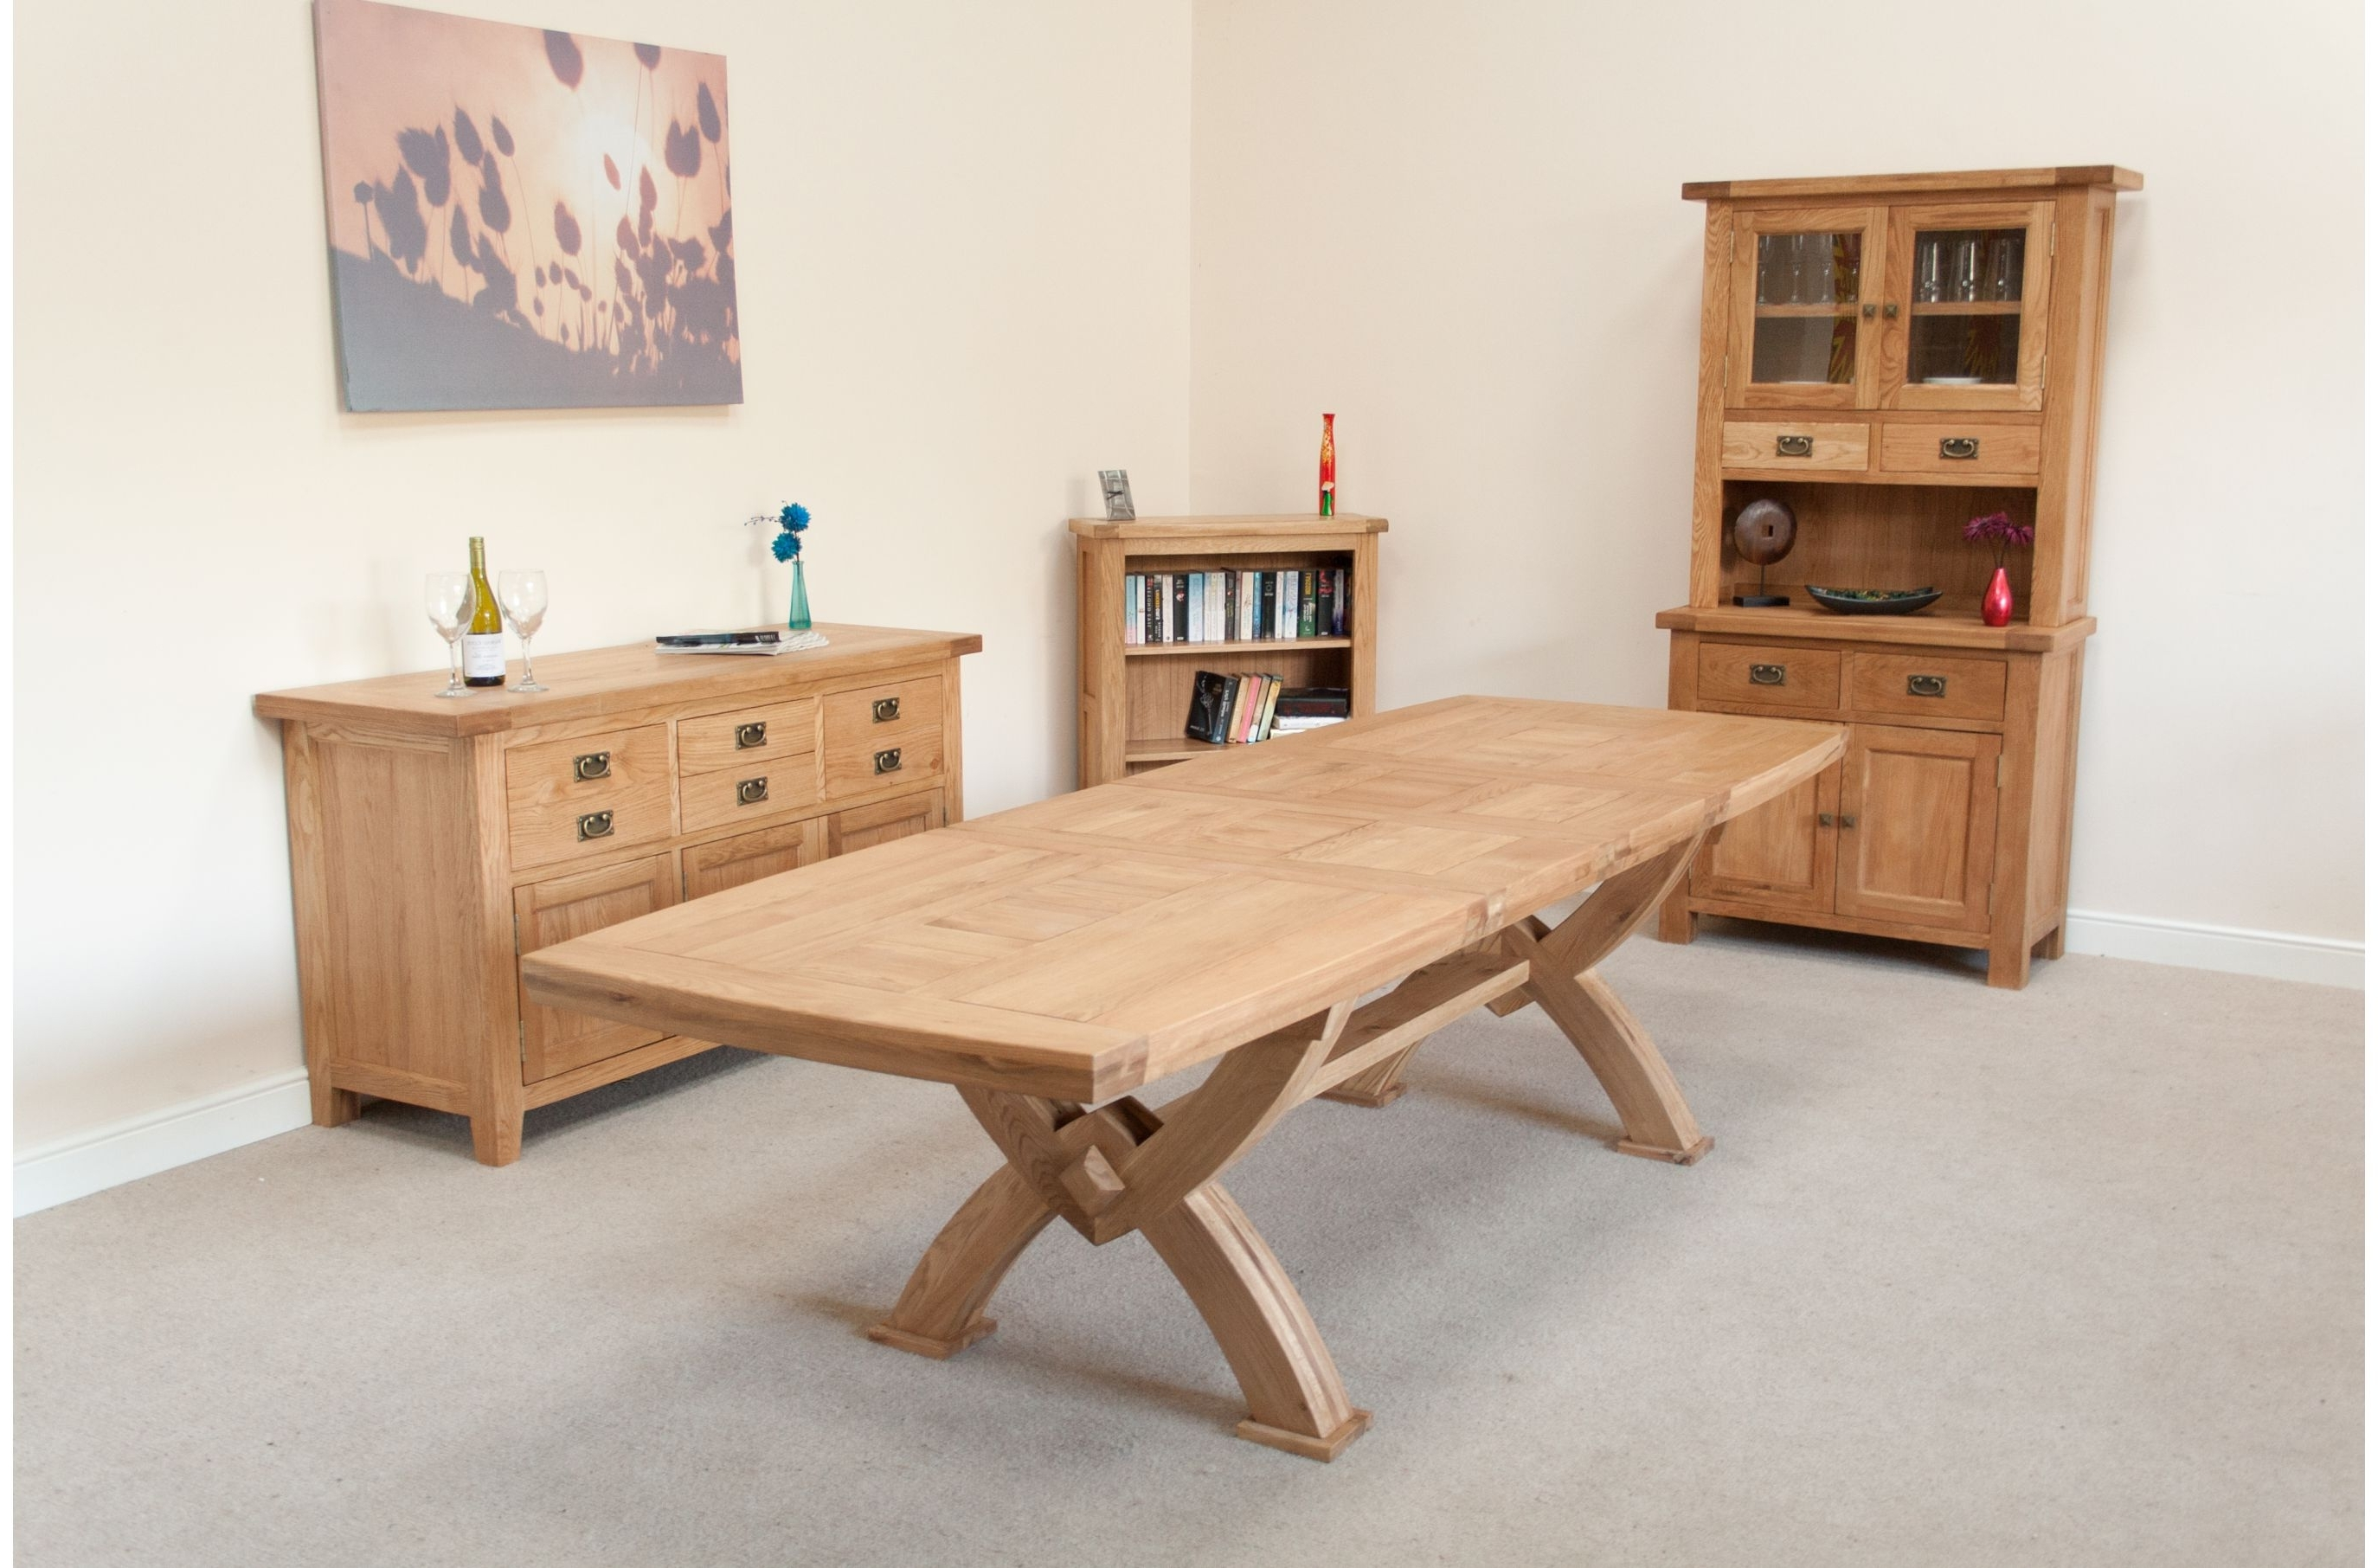 Huge Big Tables Intended For Current Oak 6 Seater Dining Tables (Gallery 12 of 25)